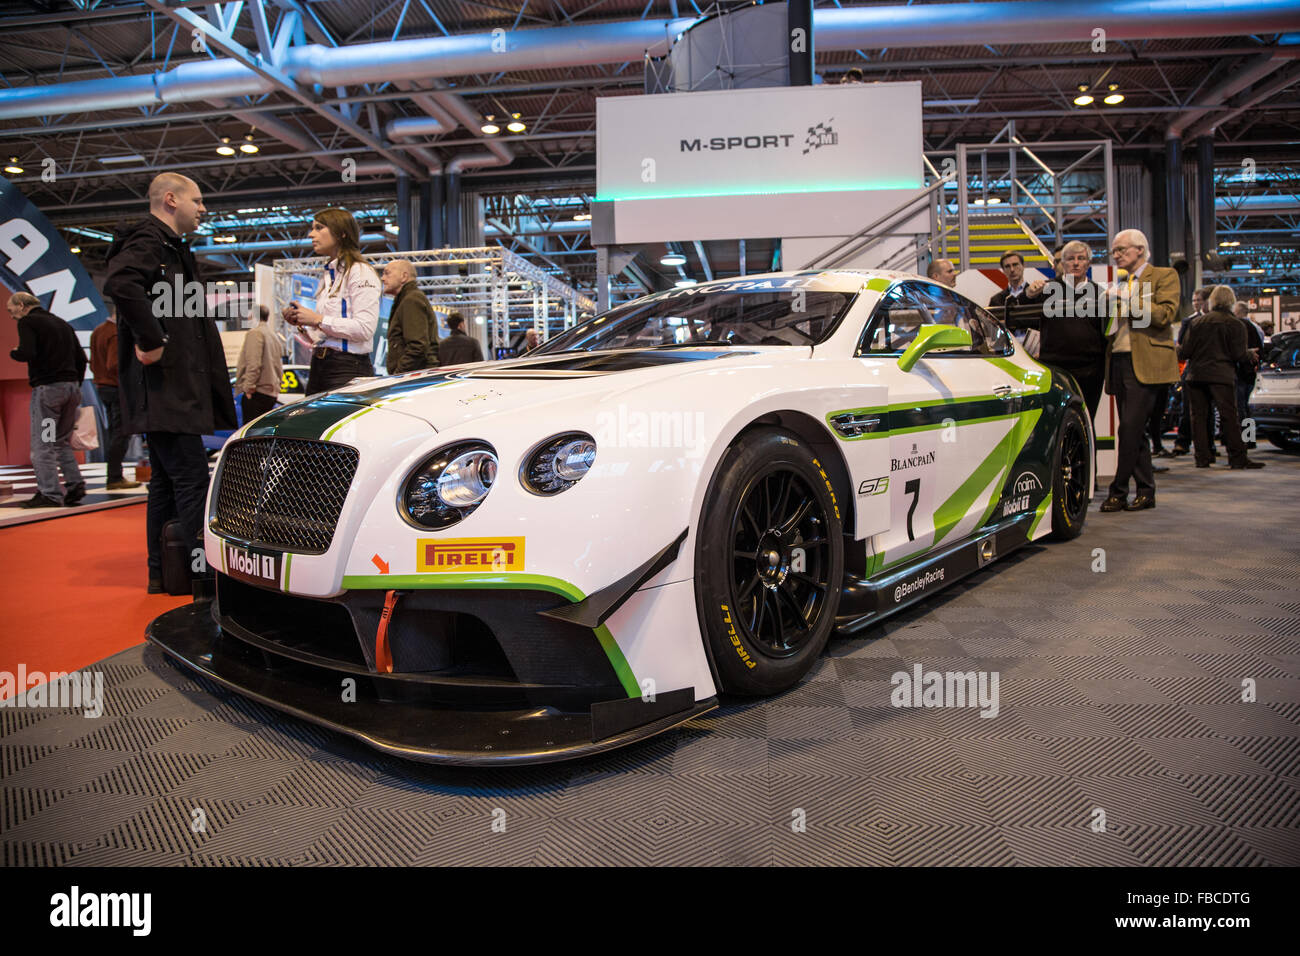 Birmingham, UK. 14th Jan, 2016. The Bentley Continental GT3 Race Car On The  M Sport Stand Credit: Steven Roe/Alamy Live News